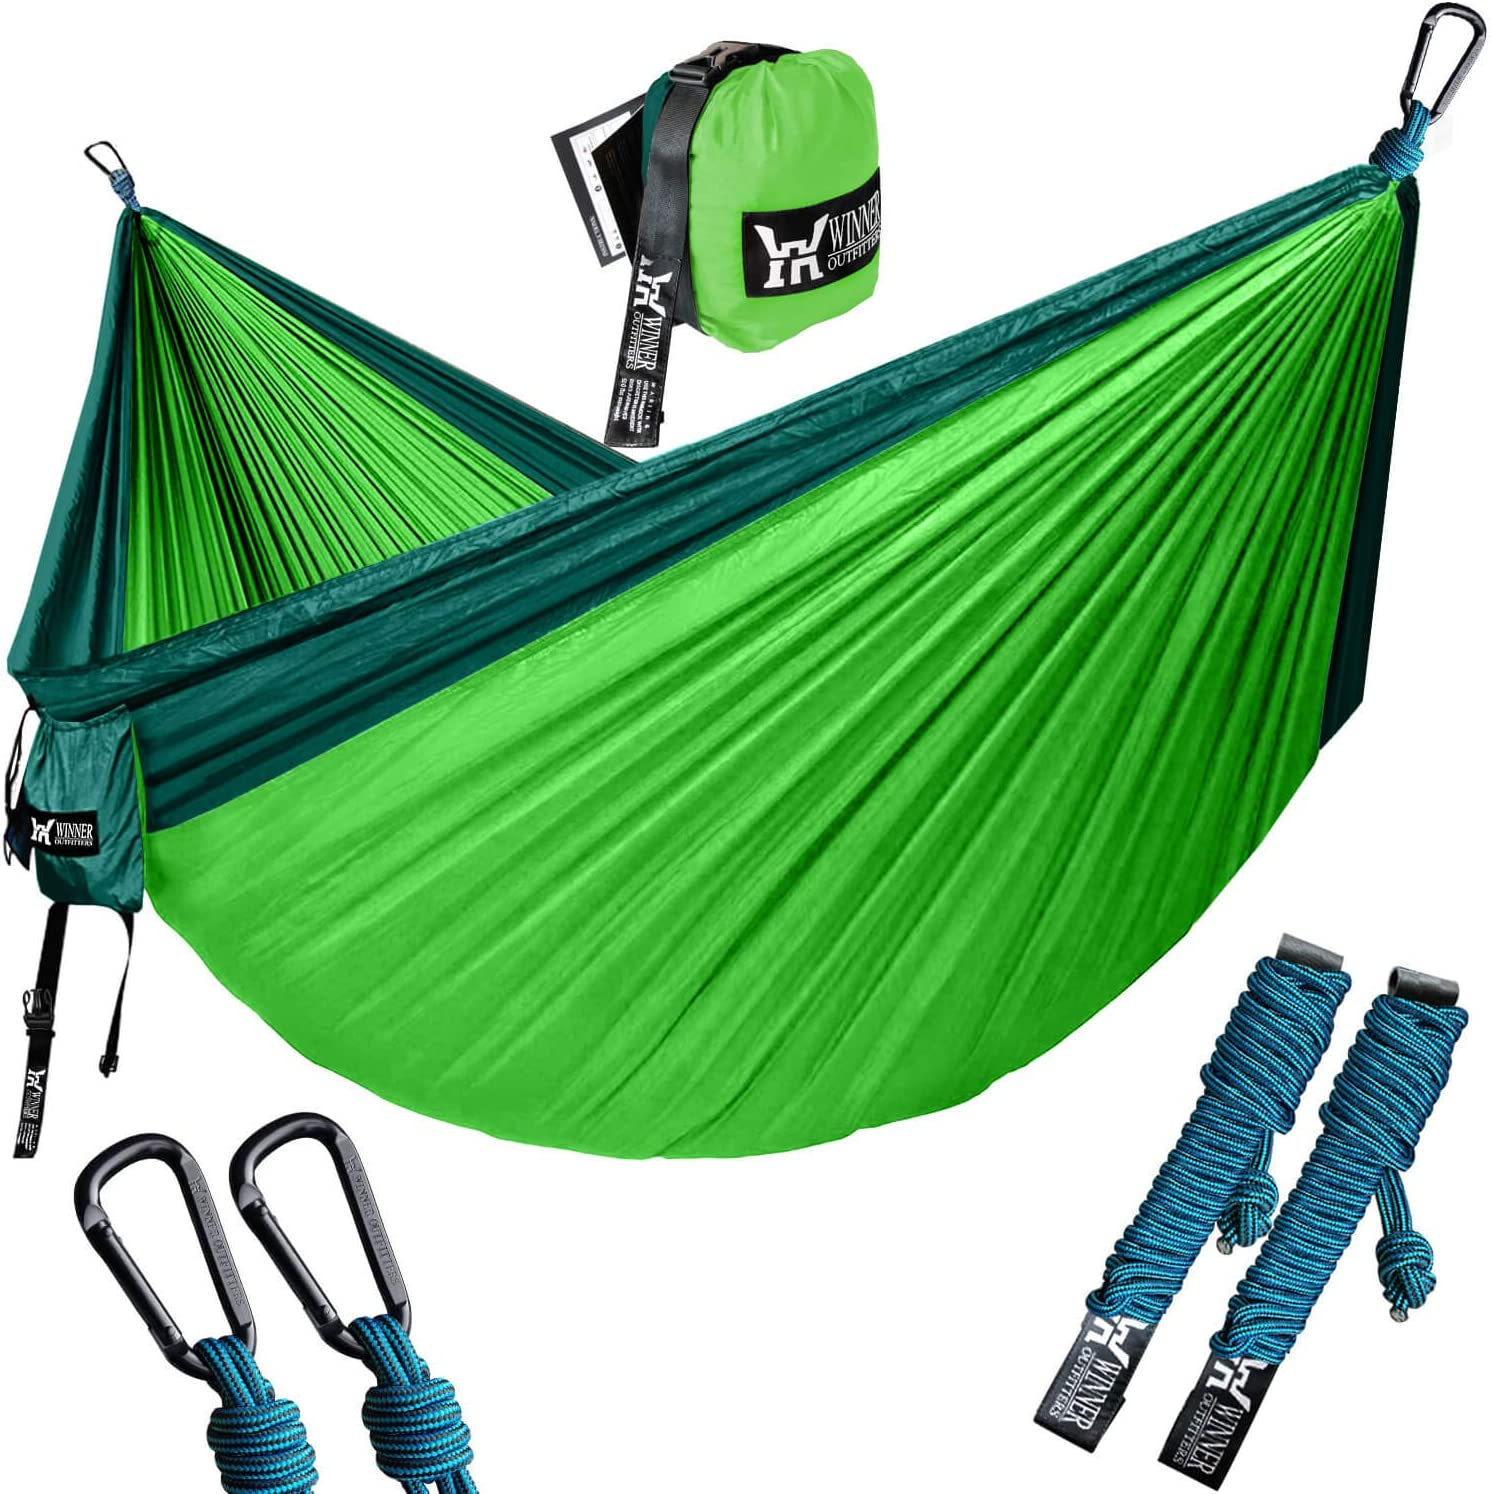 Winner Outfitters Double Camping Hammock – Lightweight Nylon Portable Hammock, Best Parachute Double Hammock For Backpacking, Camping, Travel, Beach, Yard. 118 L x 78 W , Dark Green Green Color